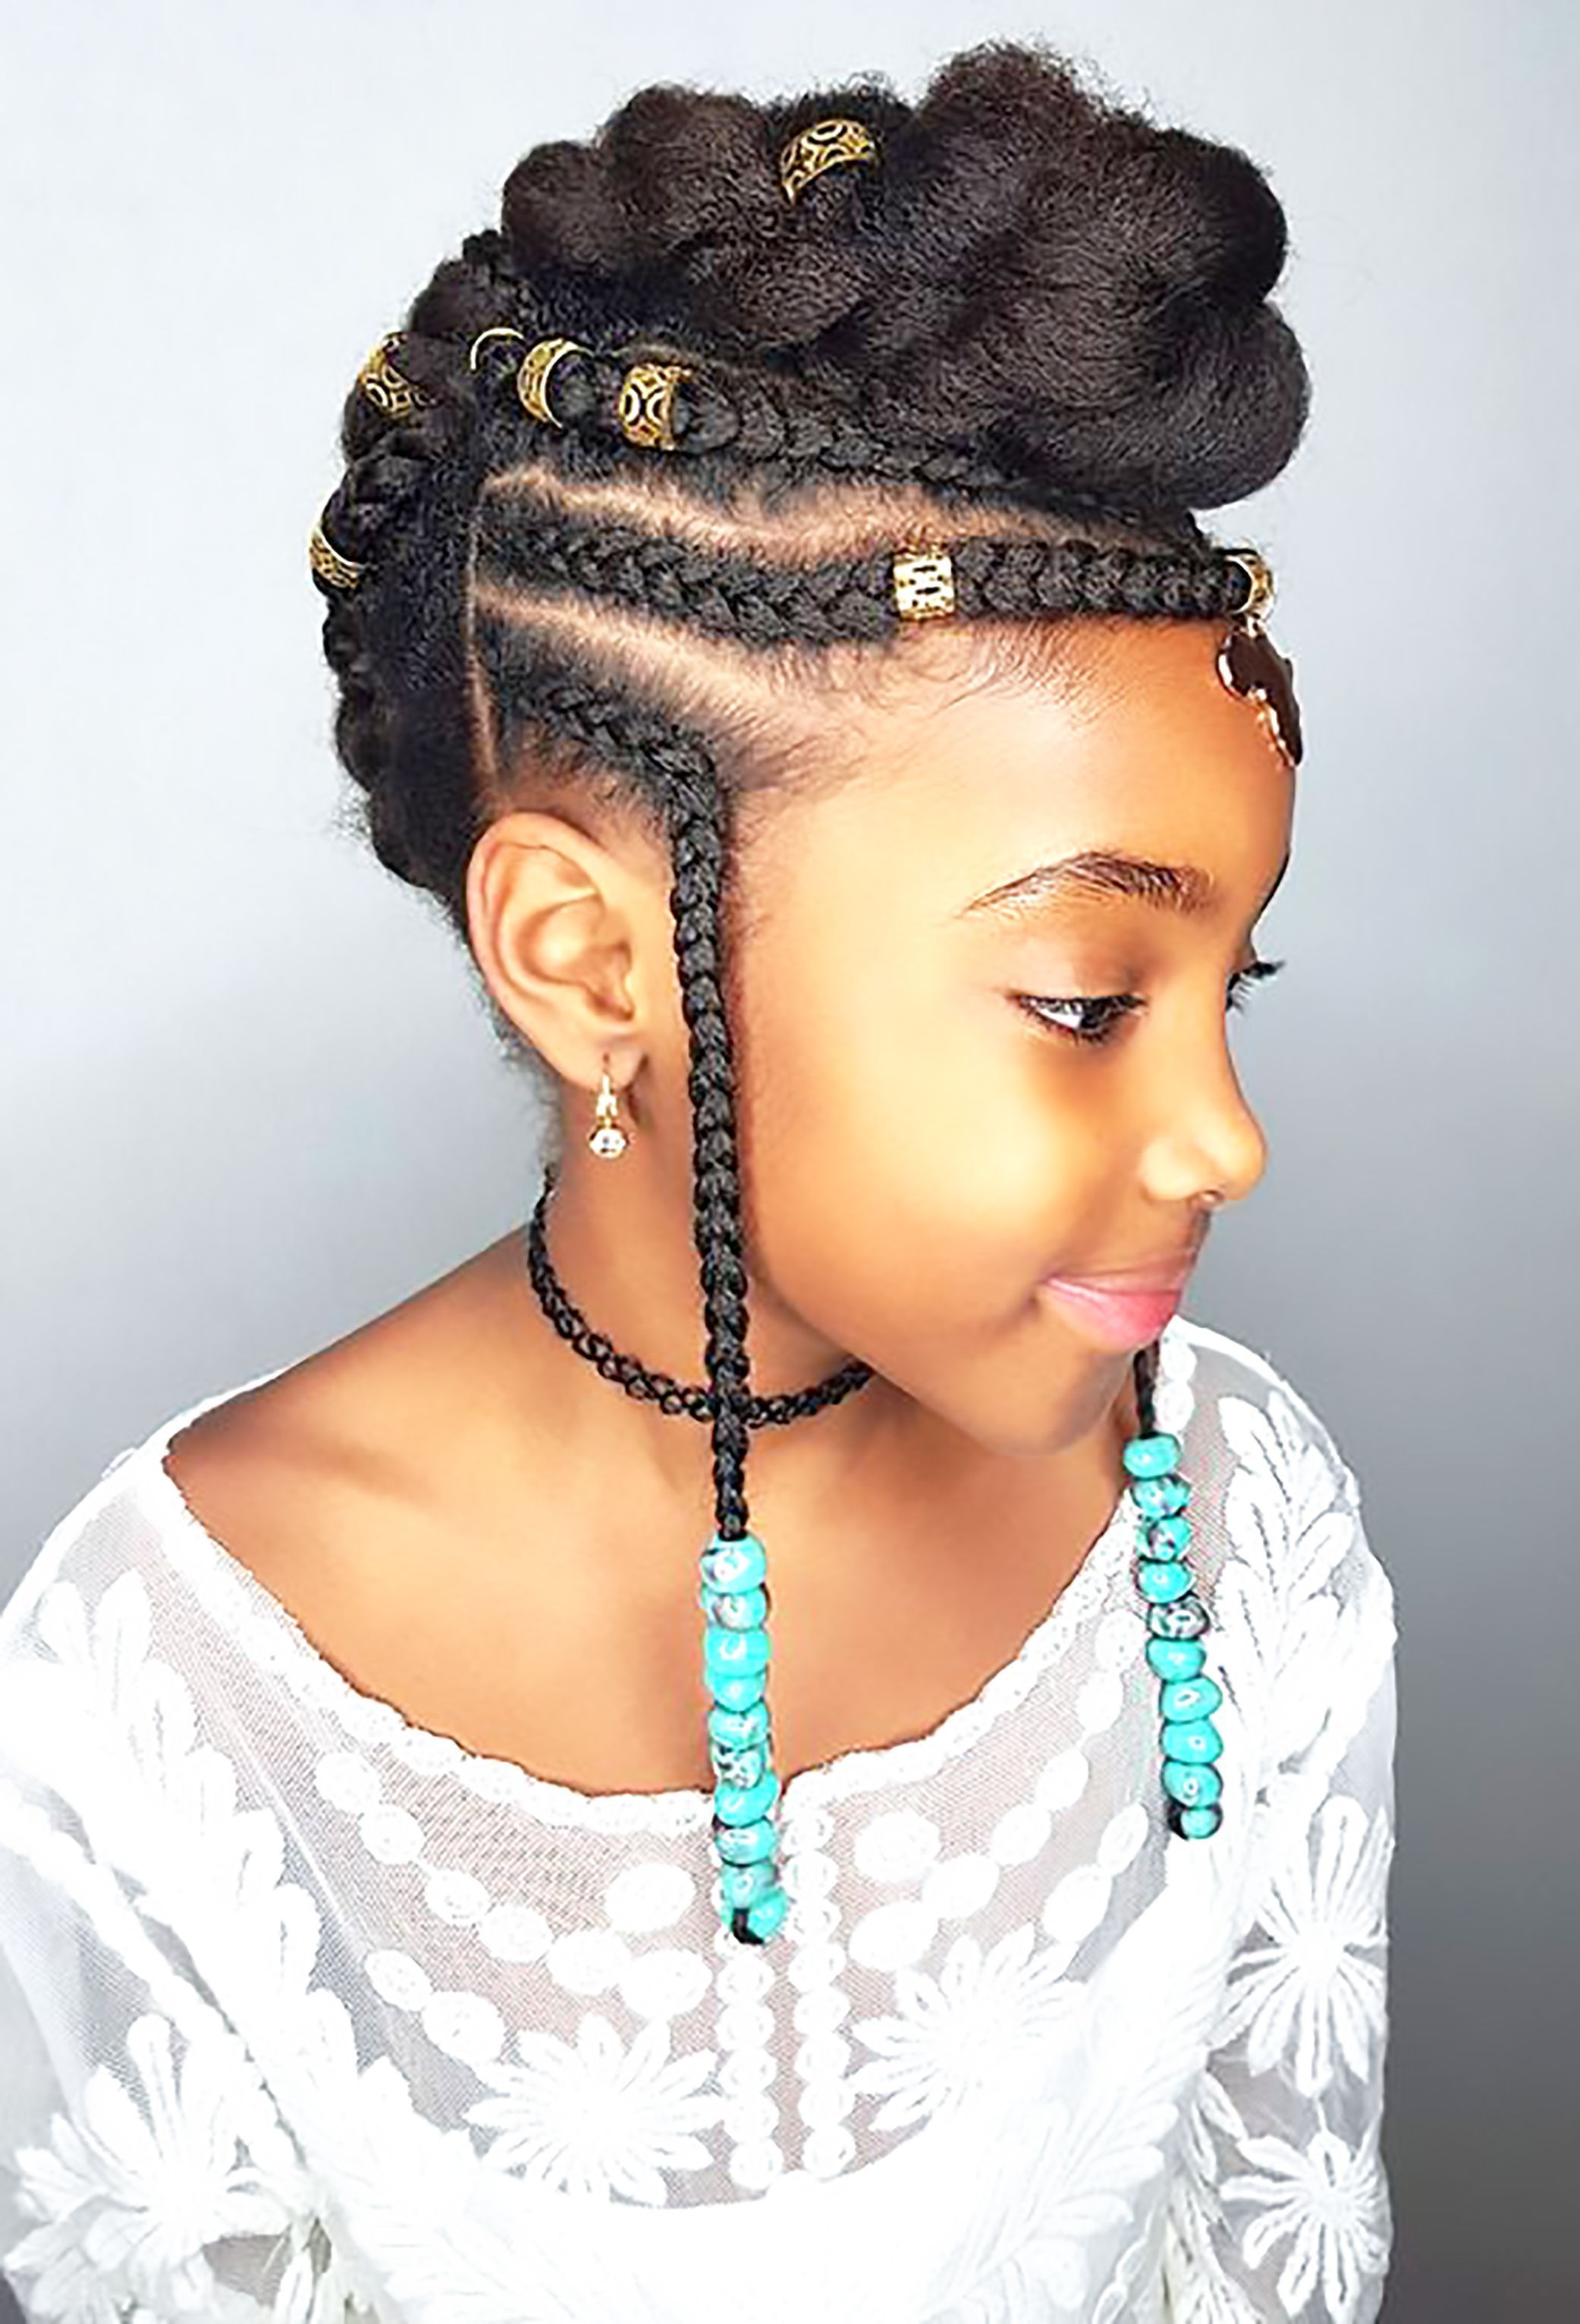 43 Best Braided Ponytail Hairstyles for 2019   Page 4 of 4   StayGlam #Braidedponytail # fulani Braids ponytail # fulani Braids ponytail